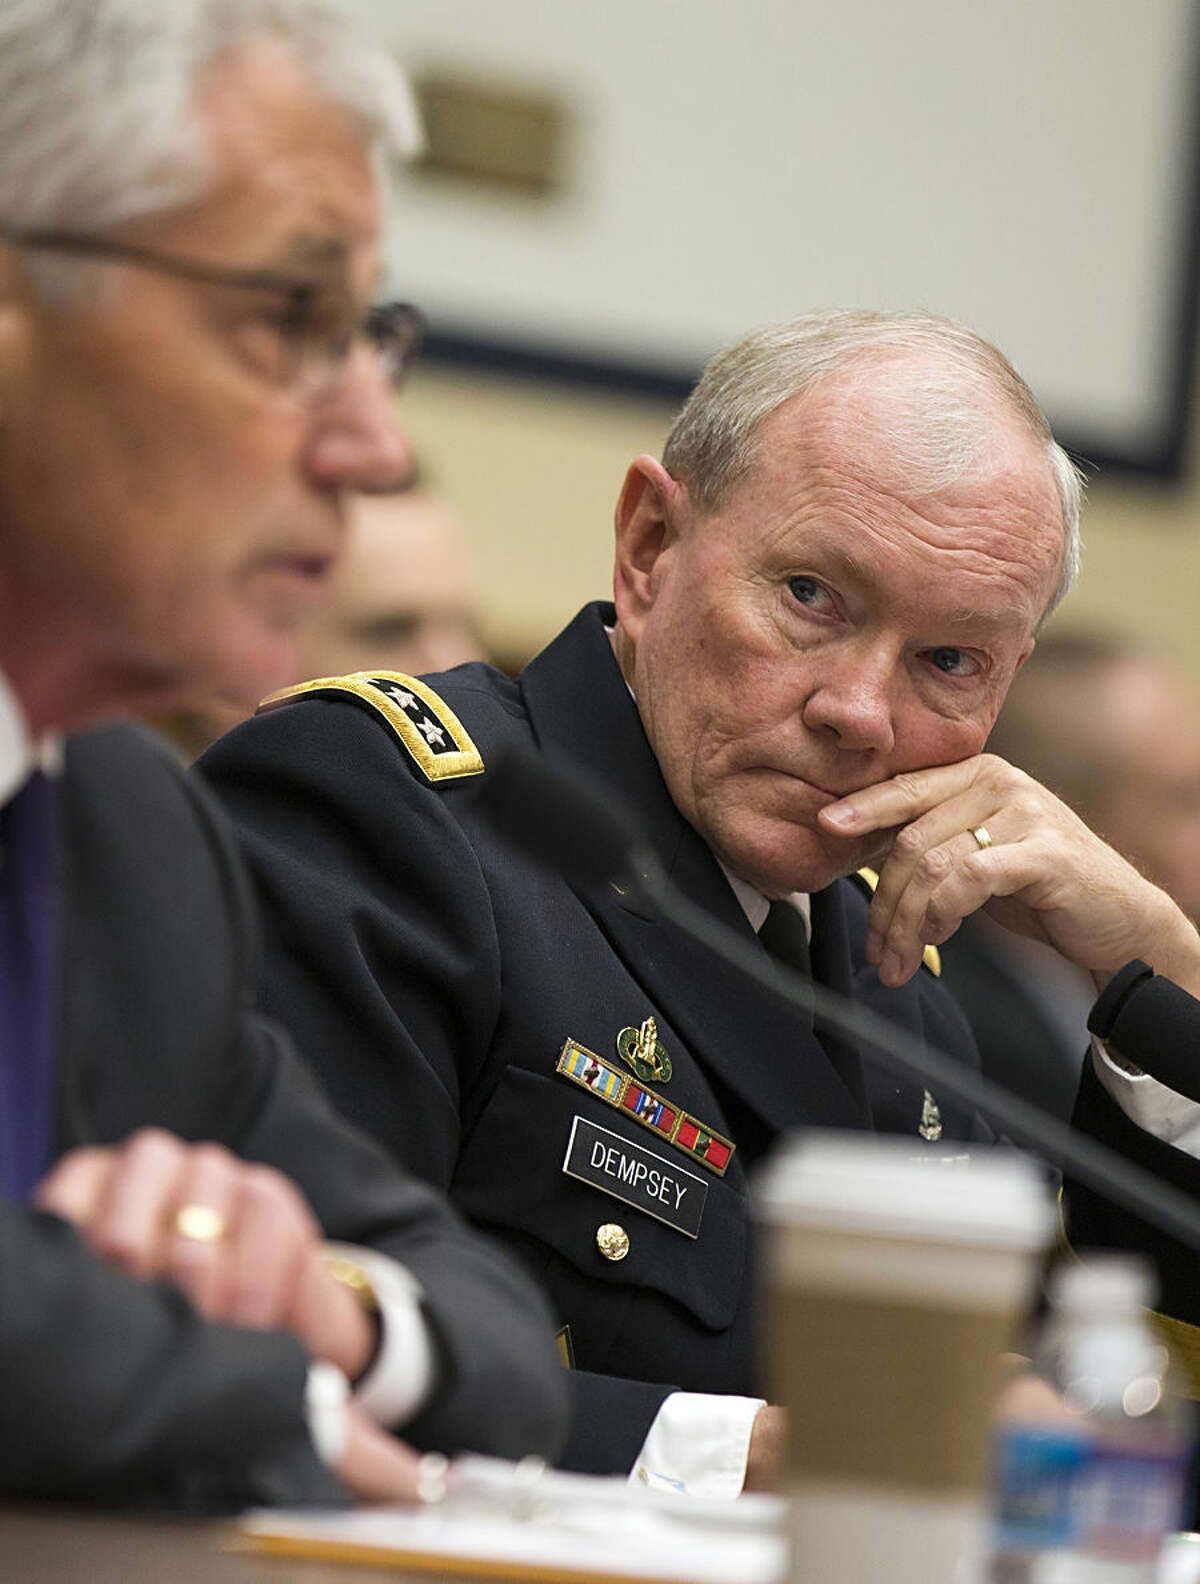 Joint Chiefs Chairman Gen. Martin Dempsey listens, at right, as Defense Secretary Chuck Hagel testifies on Capitol Hill in Washington, Thursday, Nov. 13, 2014, before the House Armed Services committee hearing on the Islamic State group. (AP Photo/Evan Vucci)